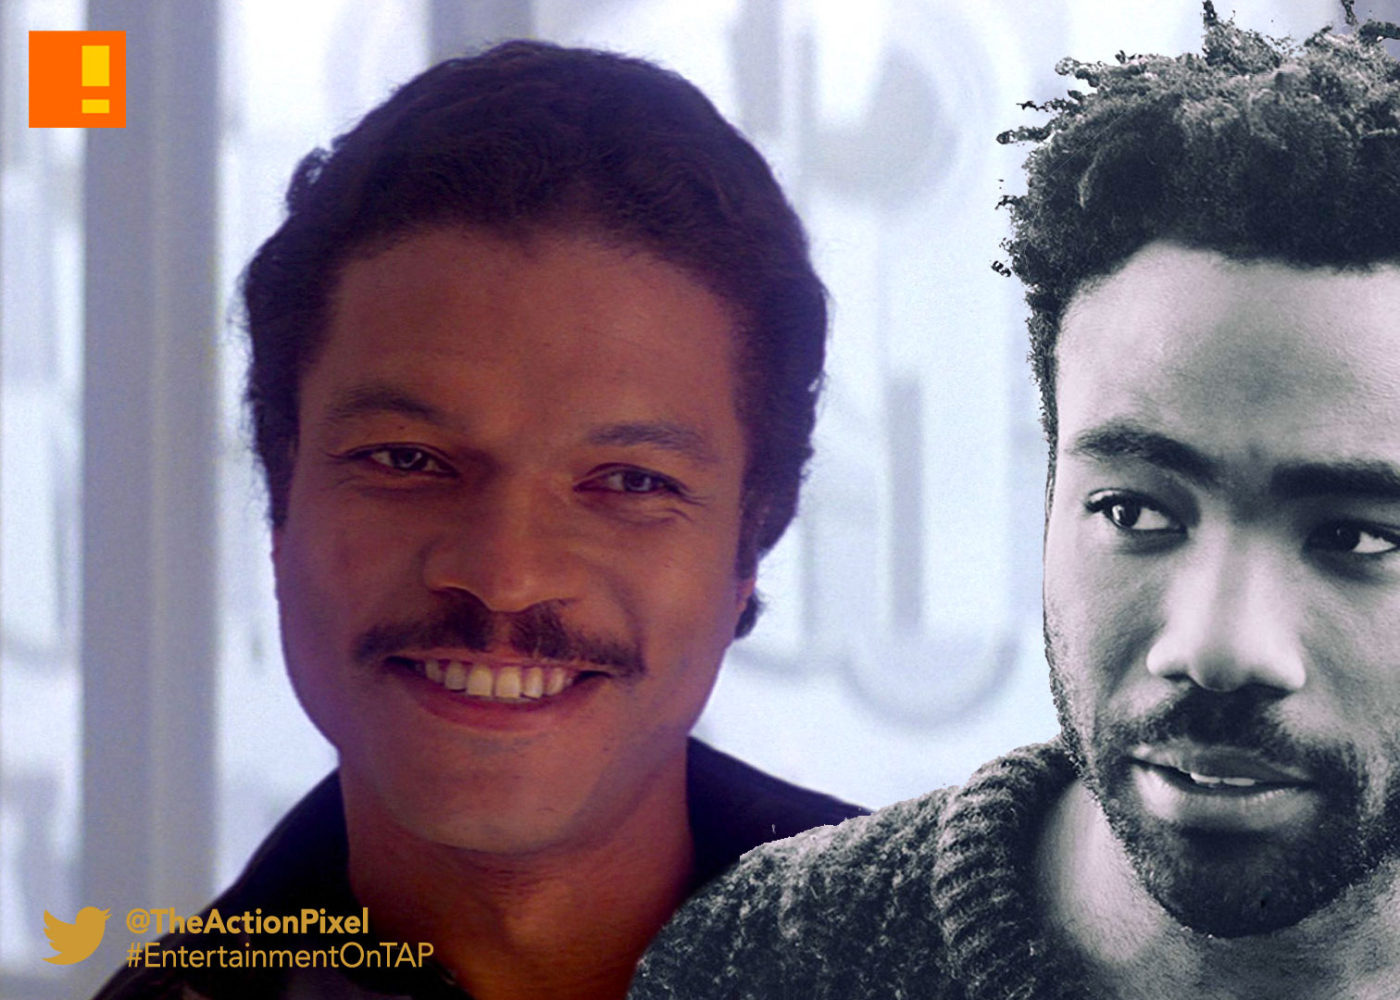 donald glover, lando, star wars, han solo, casting , the action pixel, entertainment on tap,disney, lucasfilm,